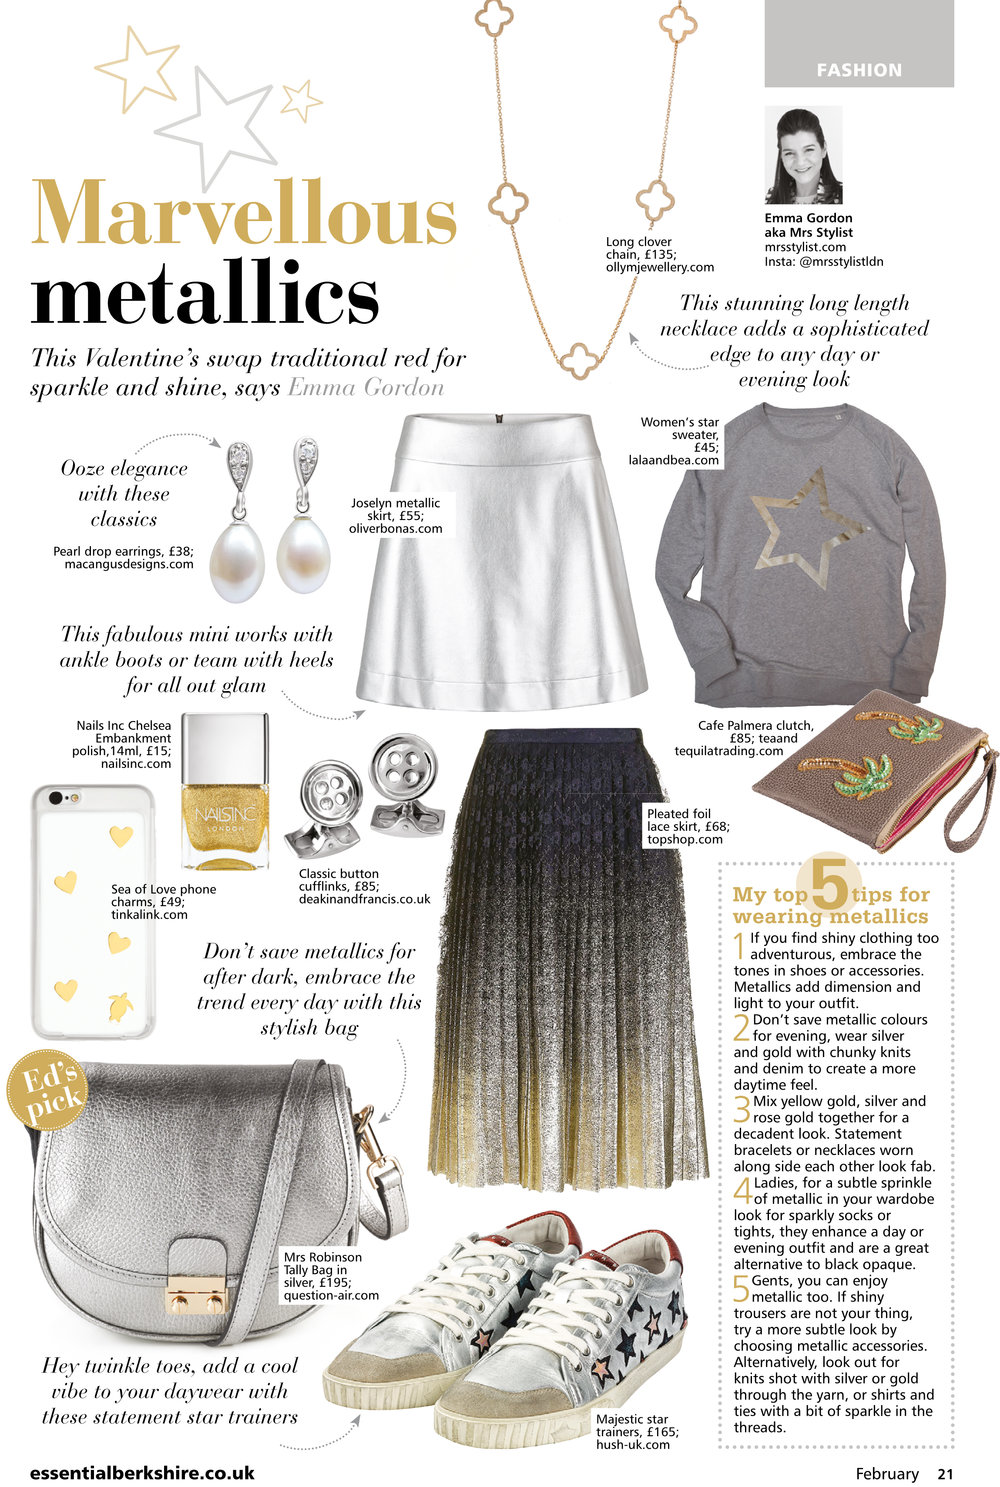 Marvellous Metallics Fashion Feb 2017 Sheengate Publishing.jpg